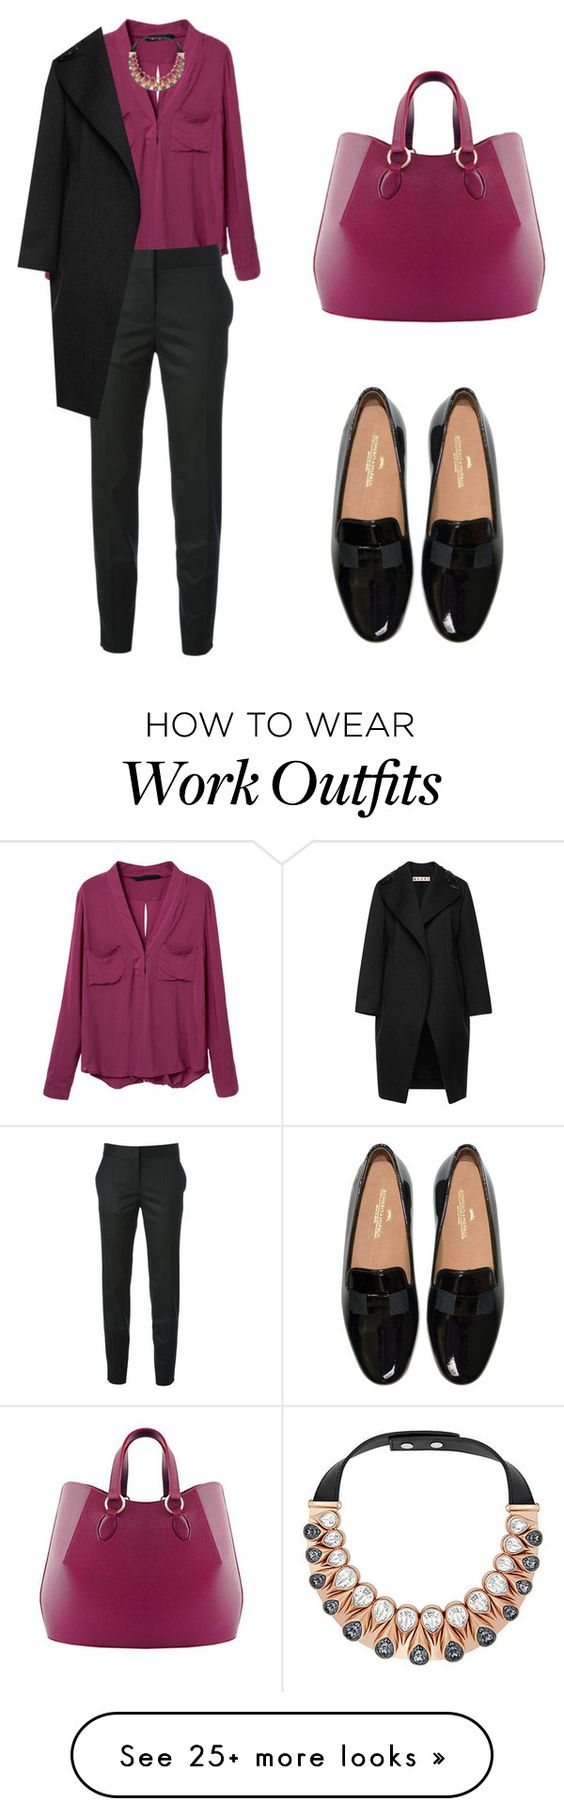 """winter at the office"" by tania-alves on Polyvore featuring moda, STELLA McCARTNEY, Swarovski, Aevha London y Marni:"